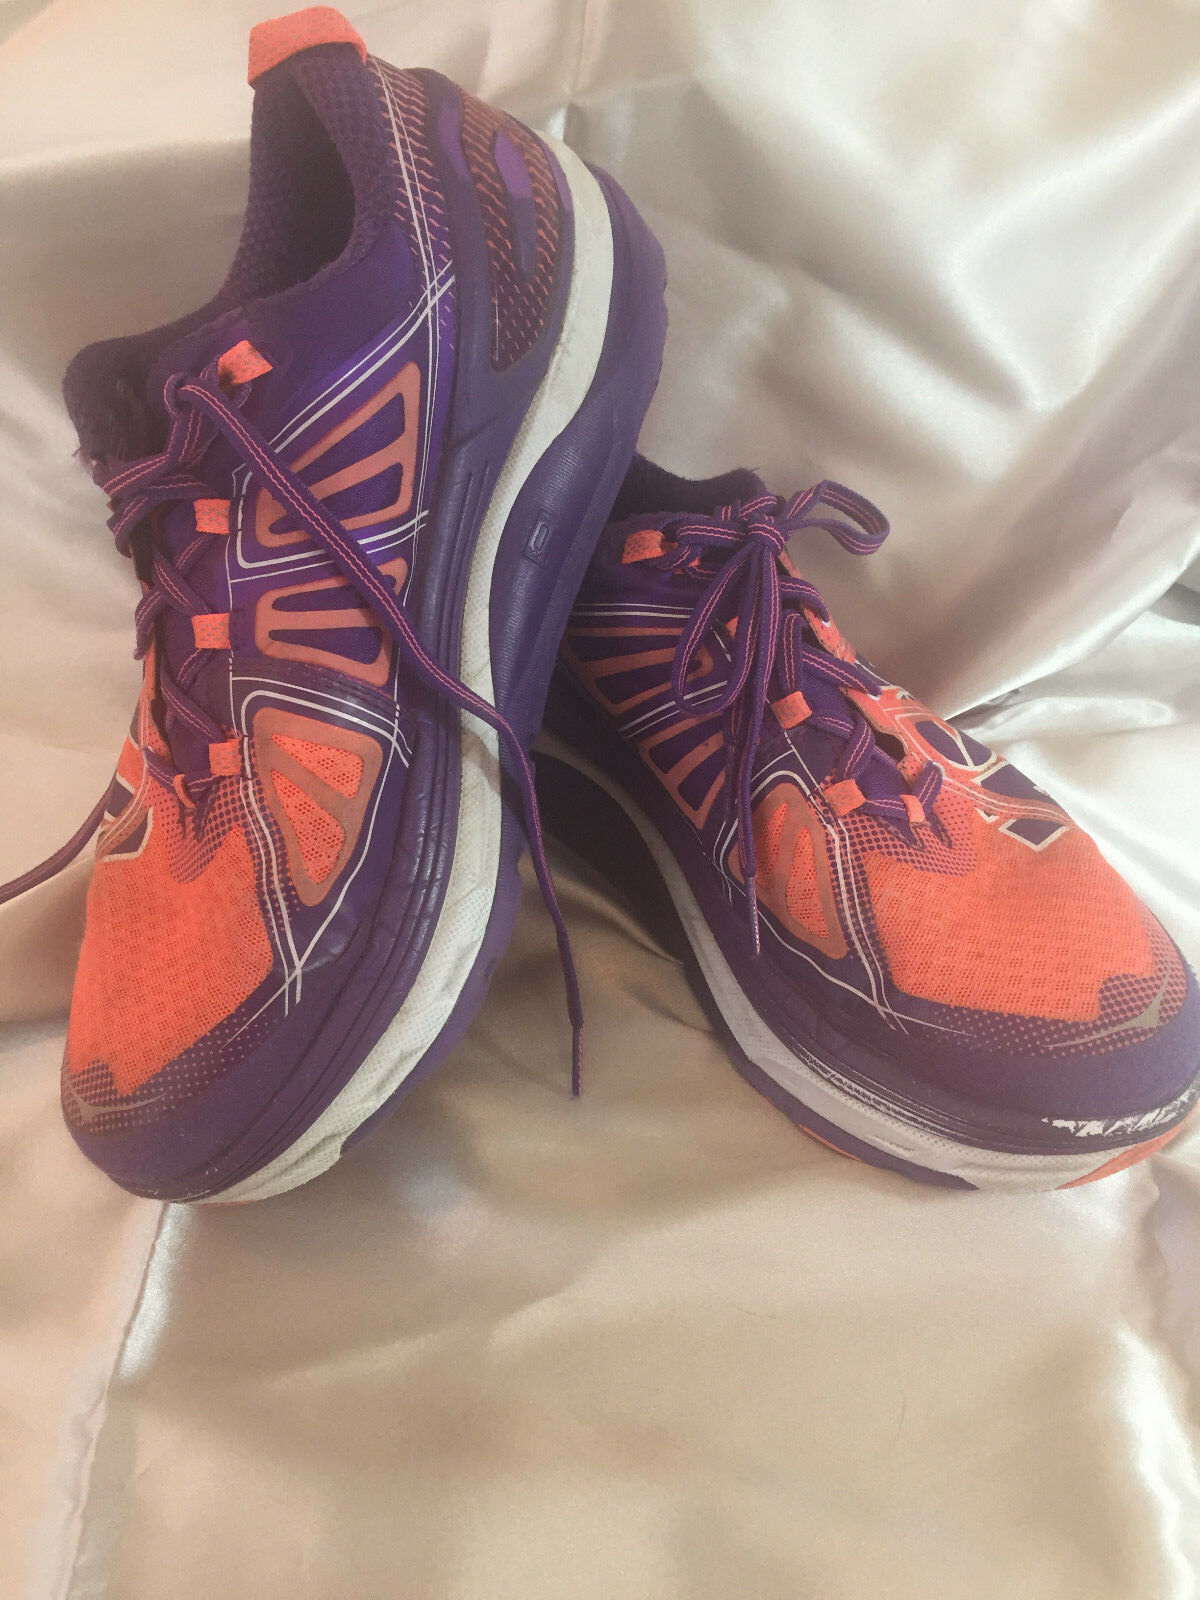 Women's Hoka One One Constant 2 Coral Purple 1009641 Running shoes Size 10.5